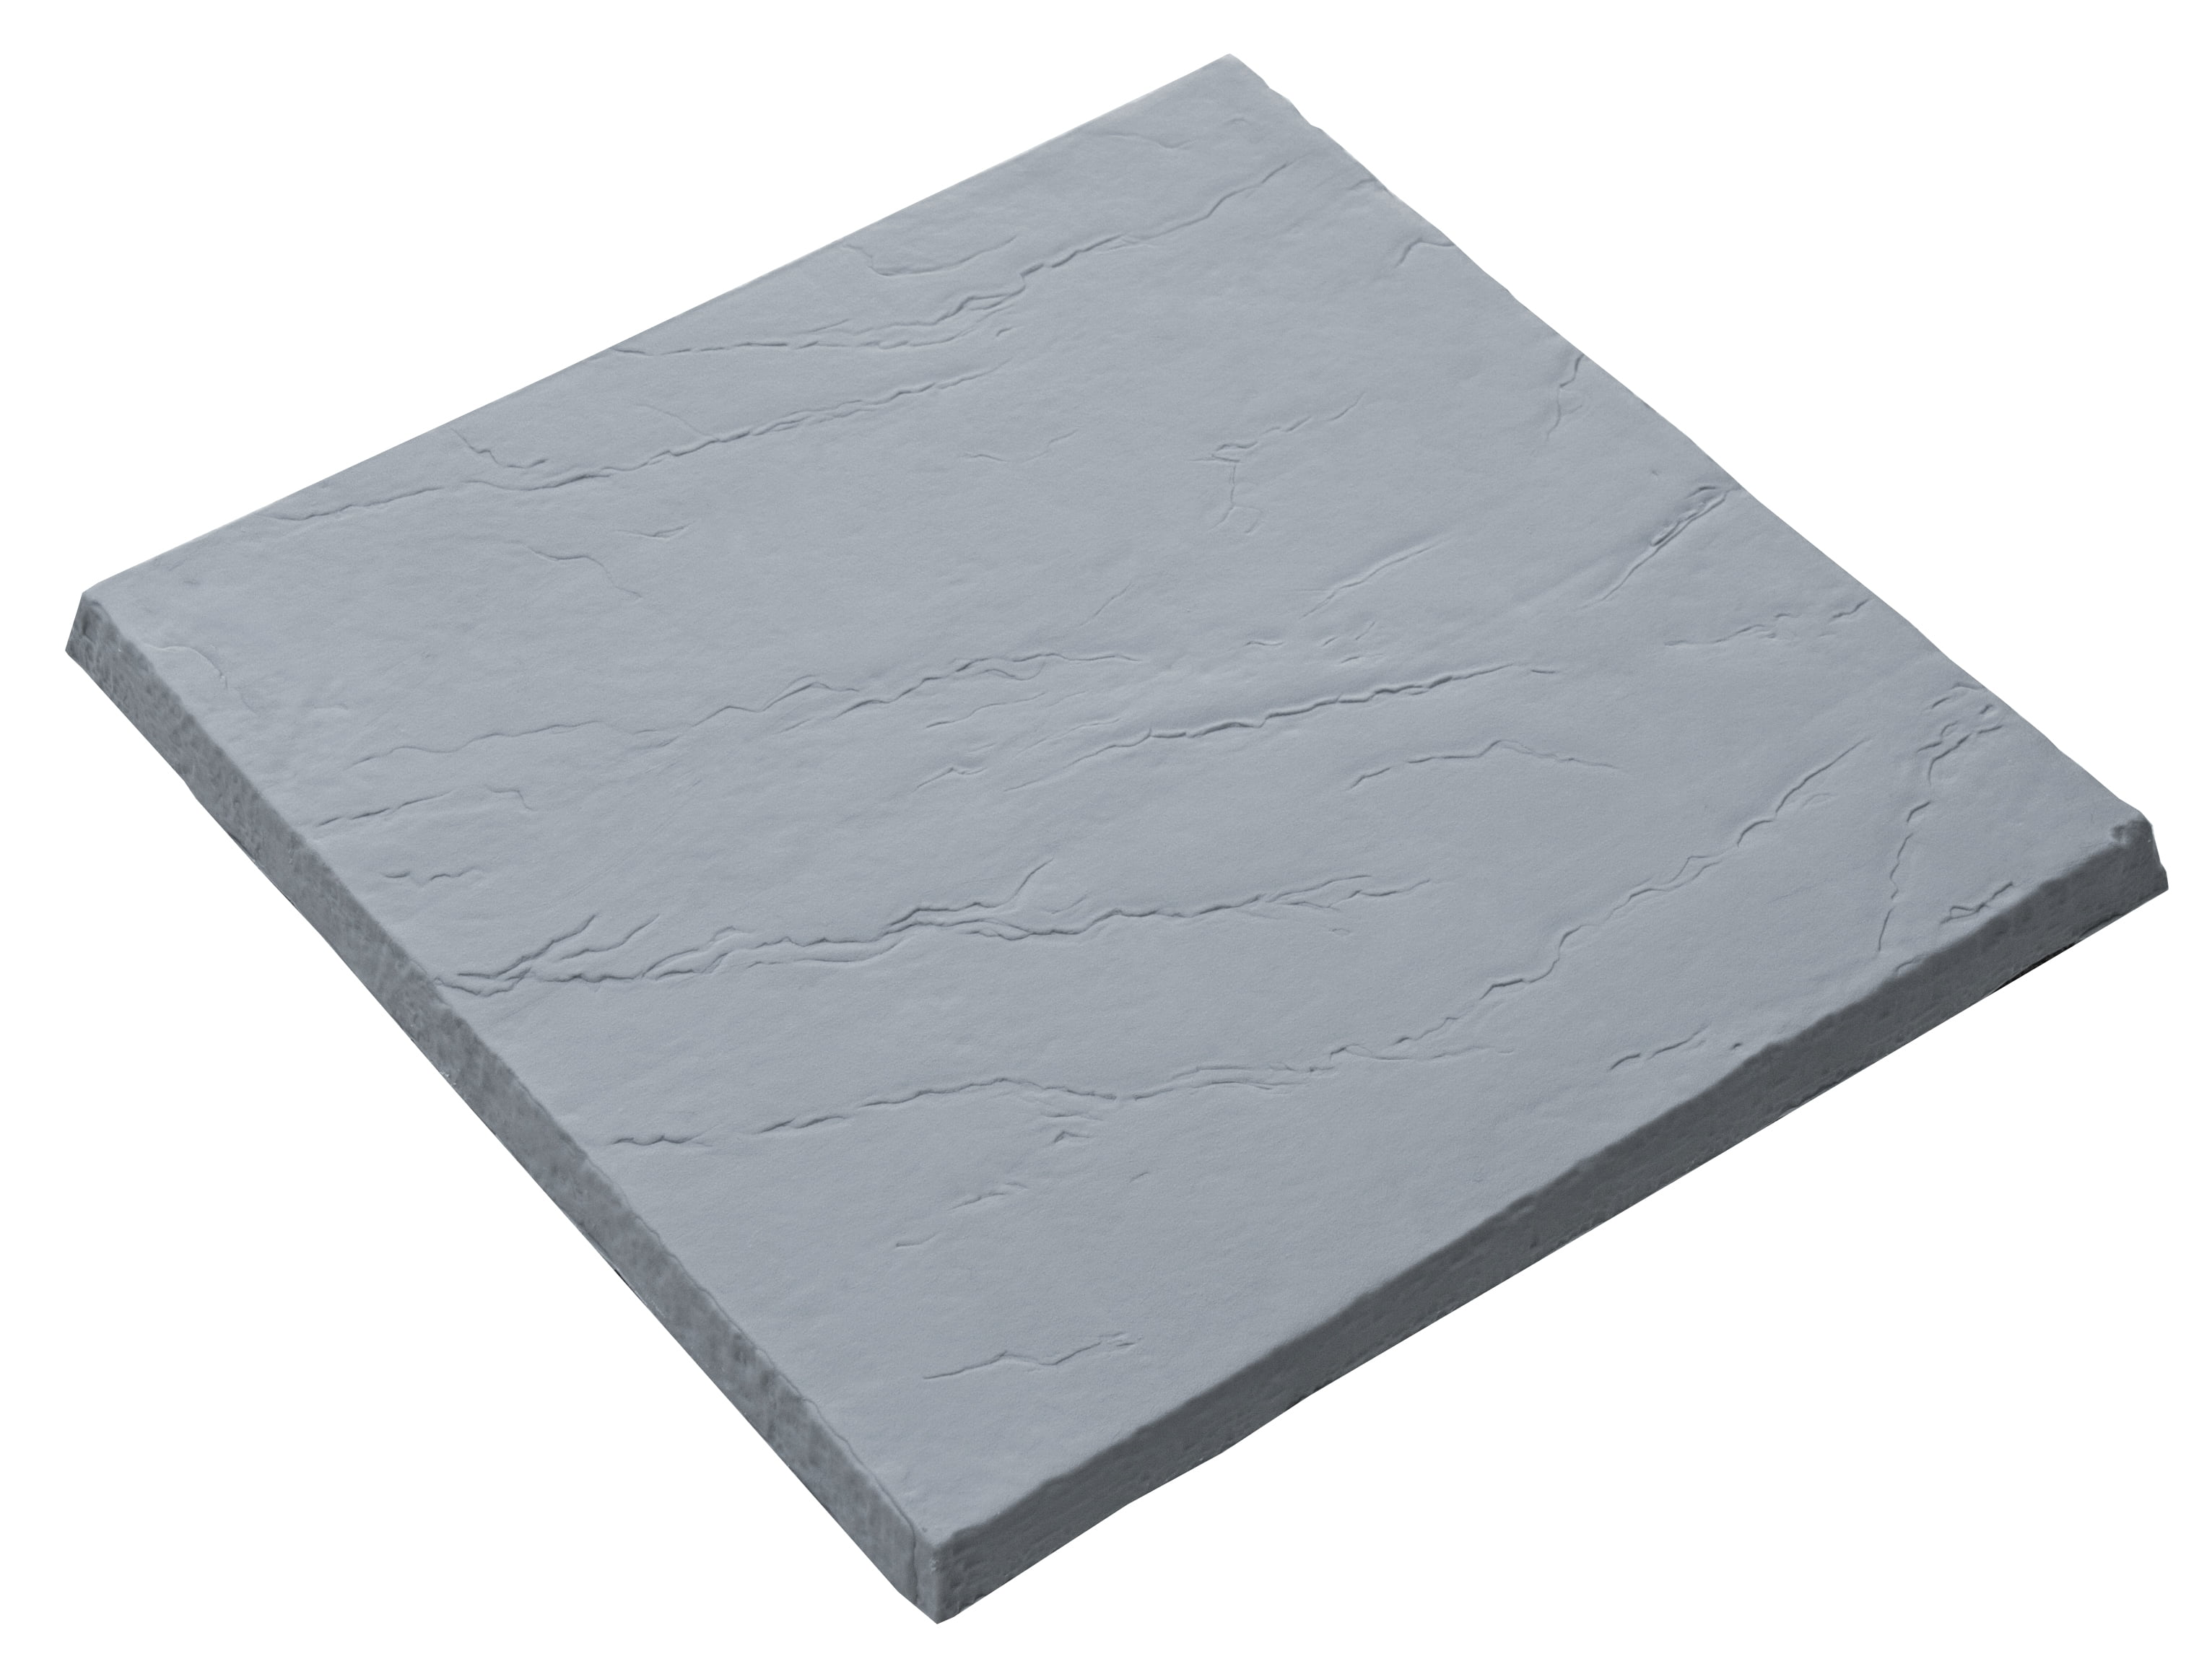 """16""""x16"""" Stepping Stones Natural Pavers Patios Walkways Dog Kennels 12 pack Slate by EMSCO Group"""